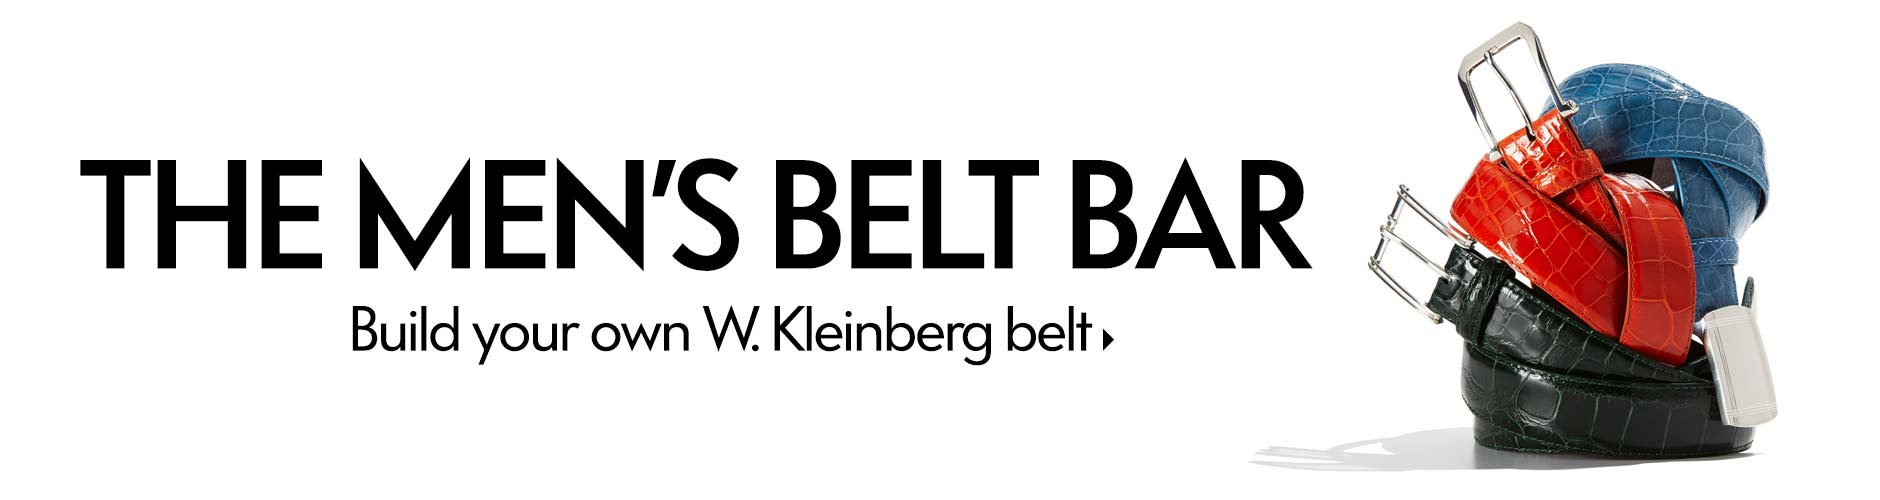 The Mens Belt Bar